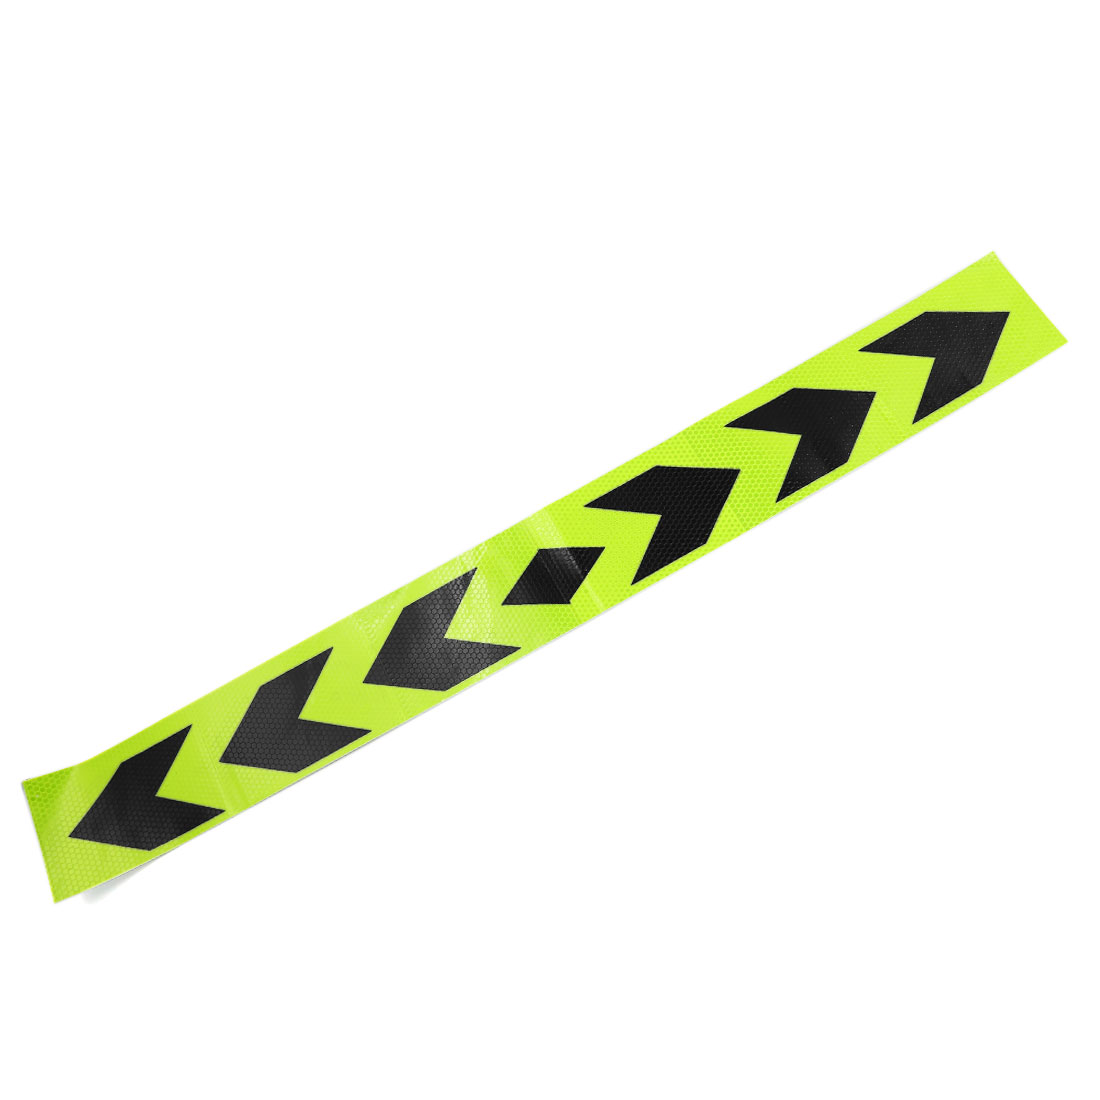 88.5cm x 9.5cm Adhesive Car Body Reflective Sticker Safety Warning Conspicuity Strip Shiny Green Black